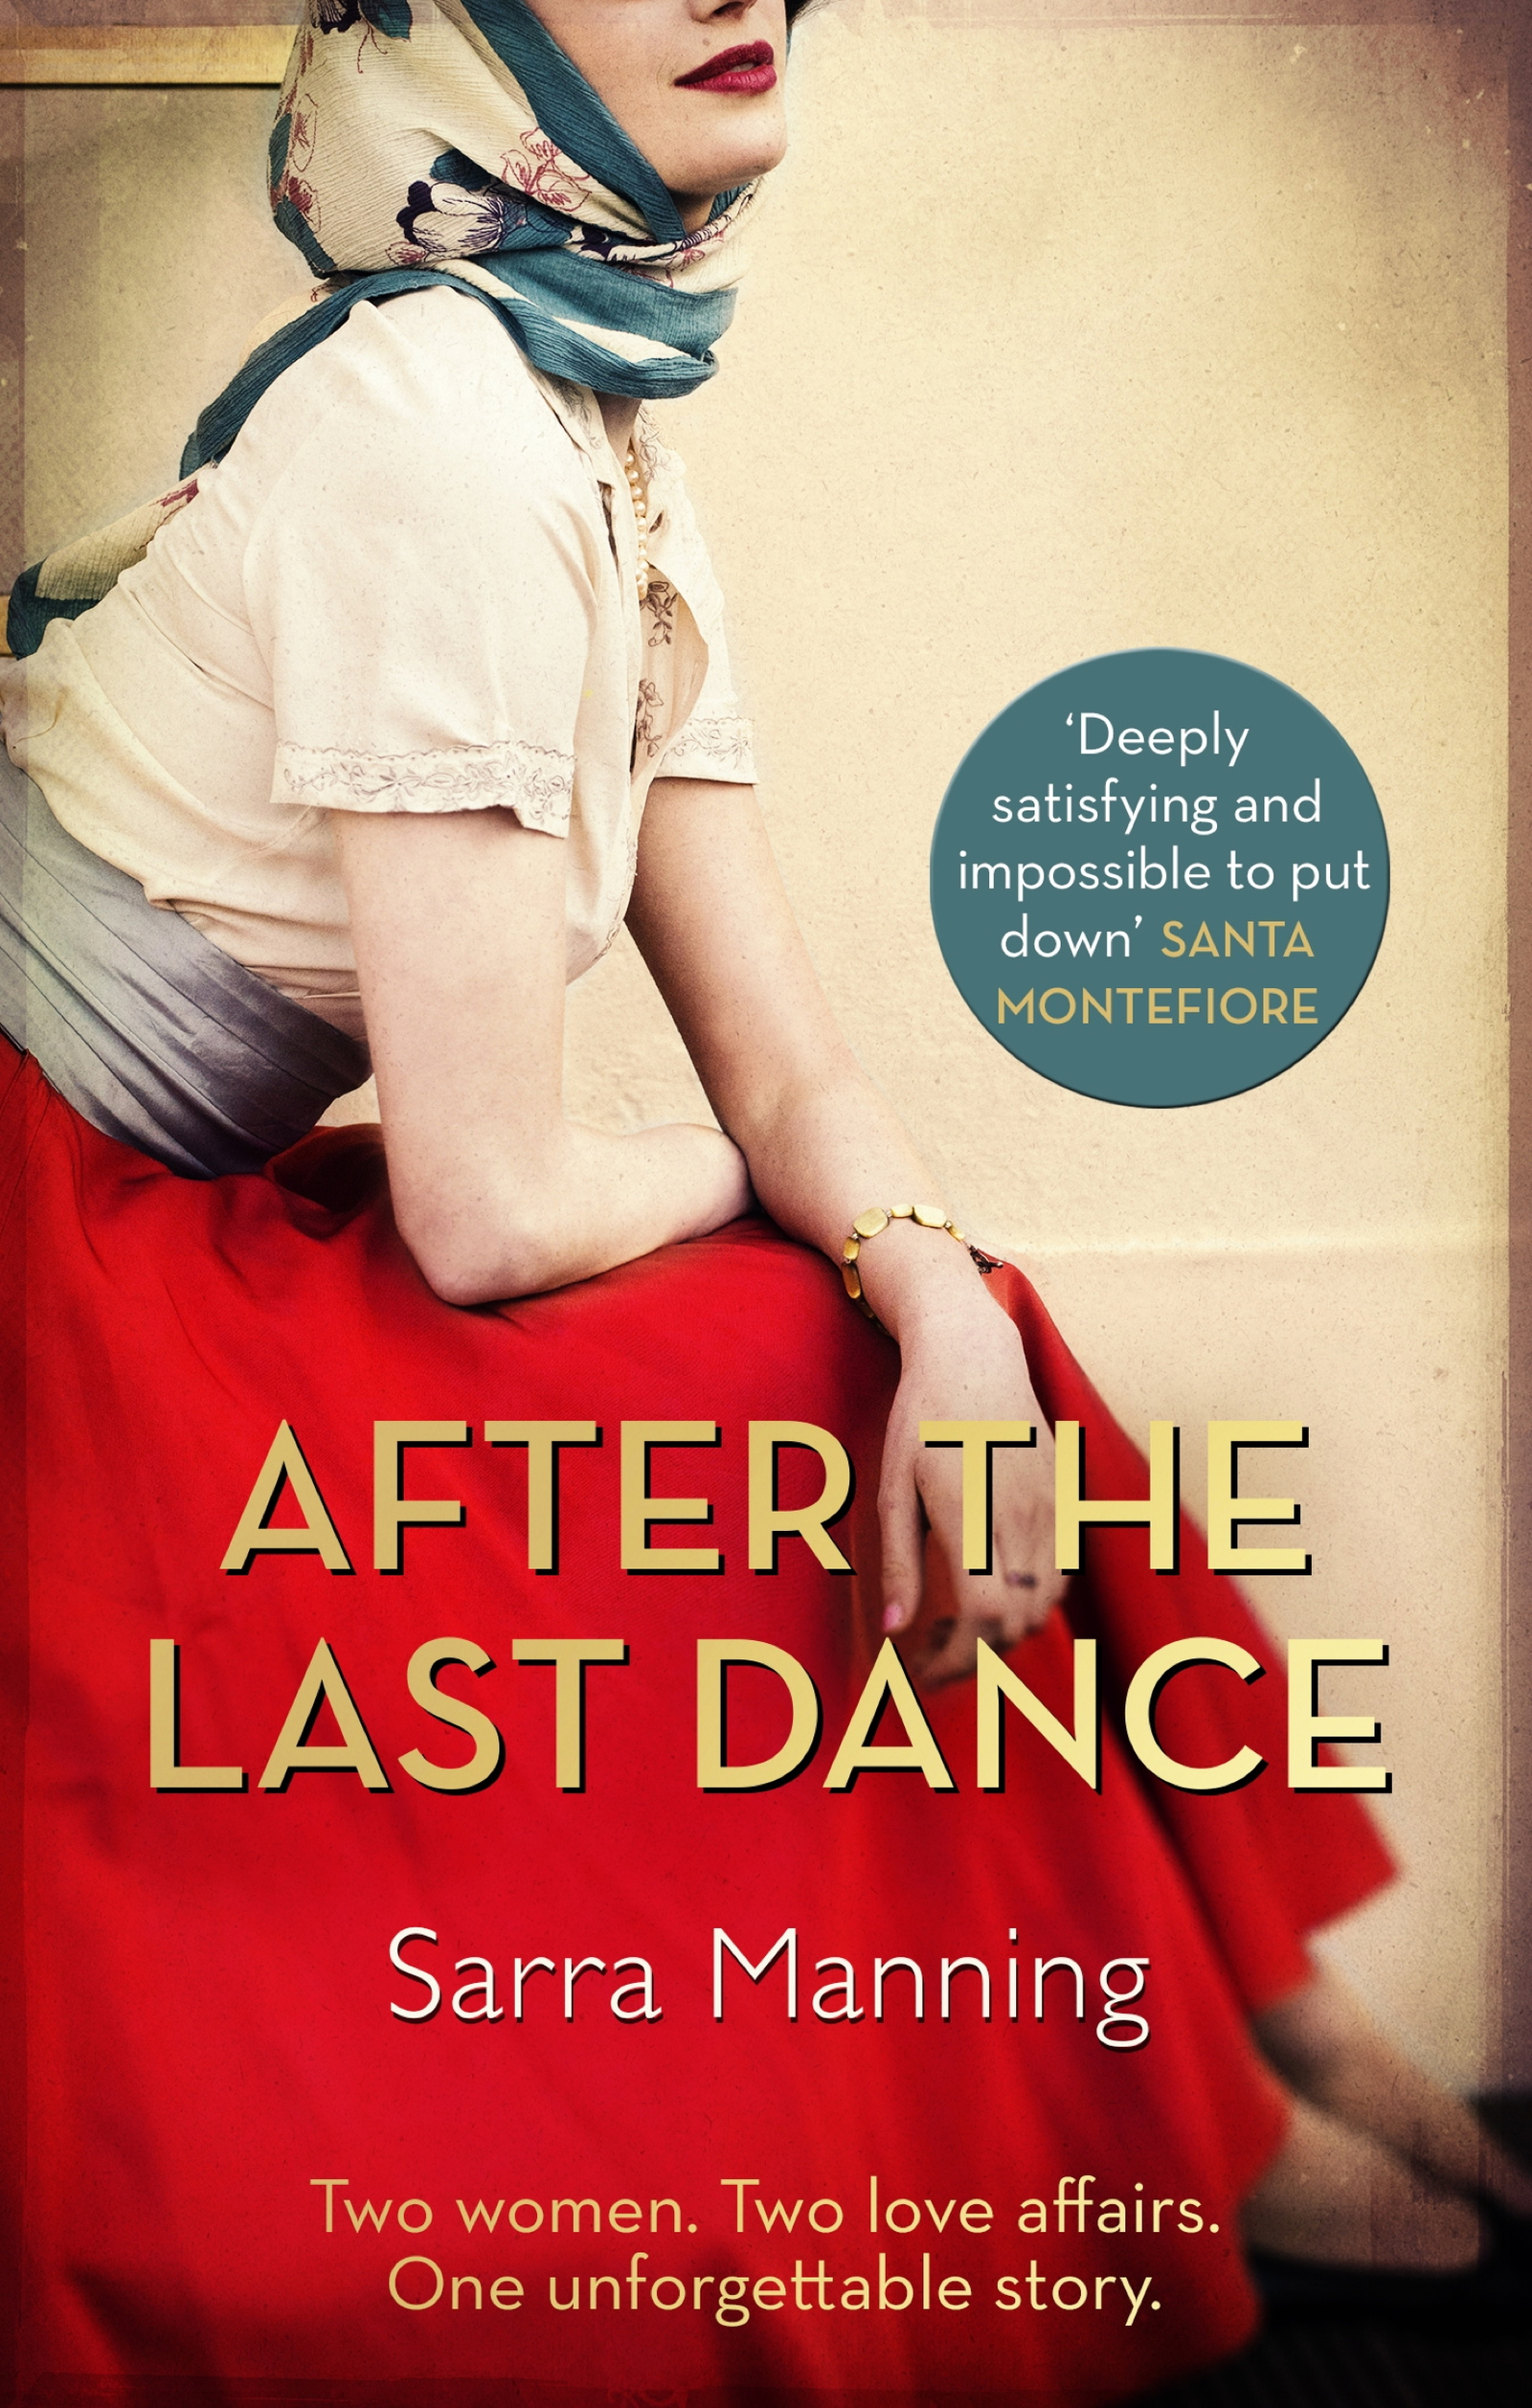 After the Last Dance